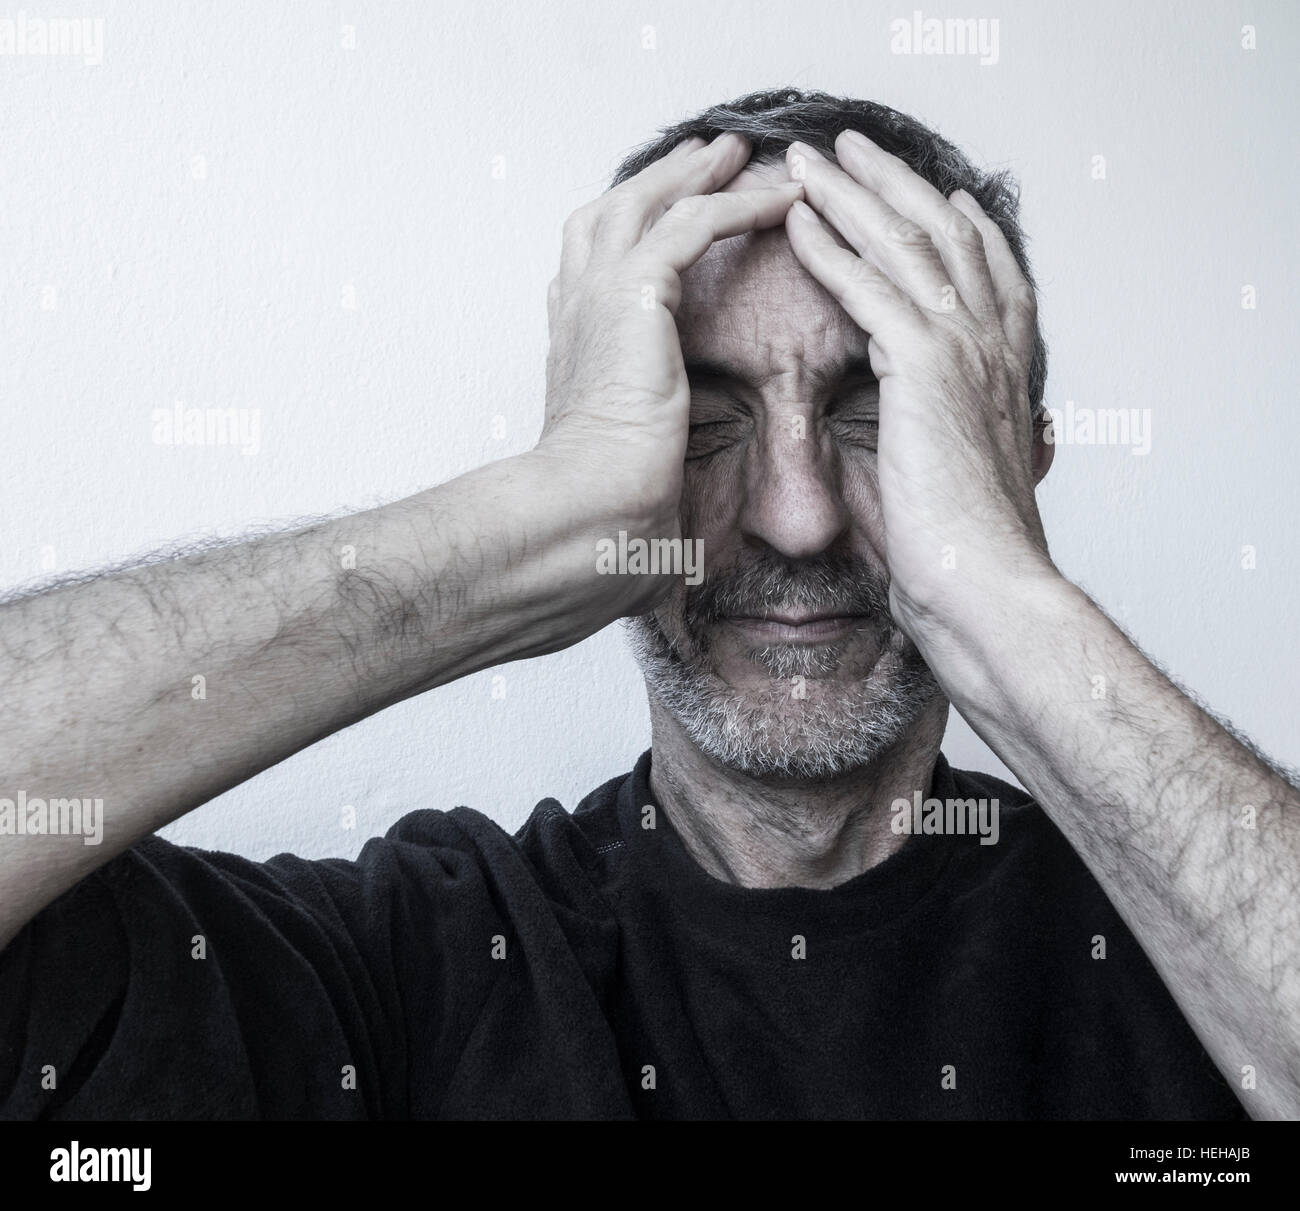 Mature man in his fifties holding his head: Depression, mental health, anxiety...concept image - Stock Image